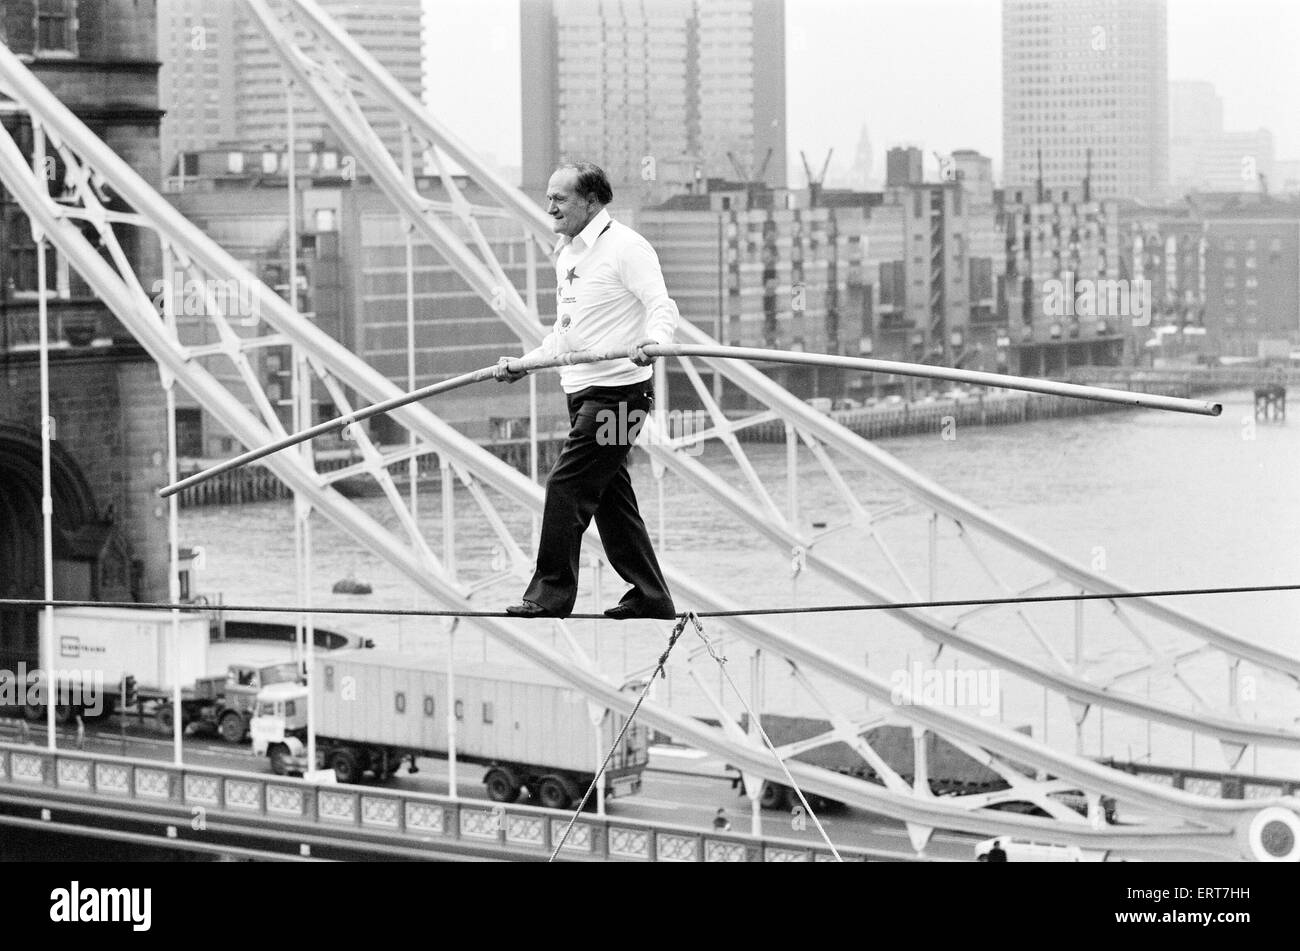 Karl Wallenda, Tightrope Walker, crosses 100ft above the ground, near Tower Bridge, London, Monday 22nd November - Stock Image